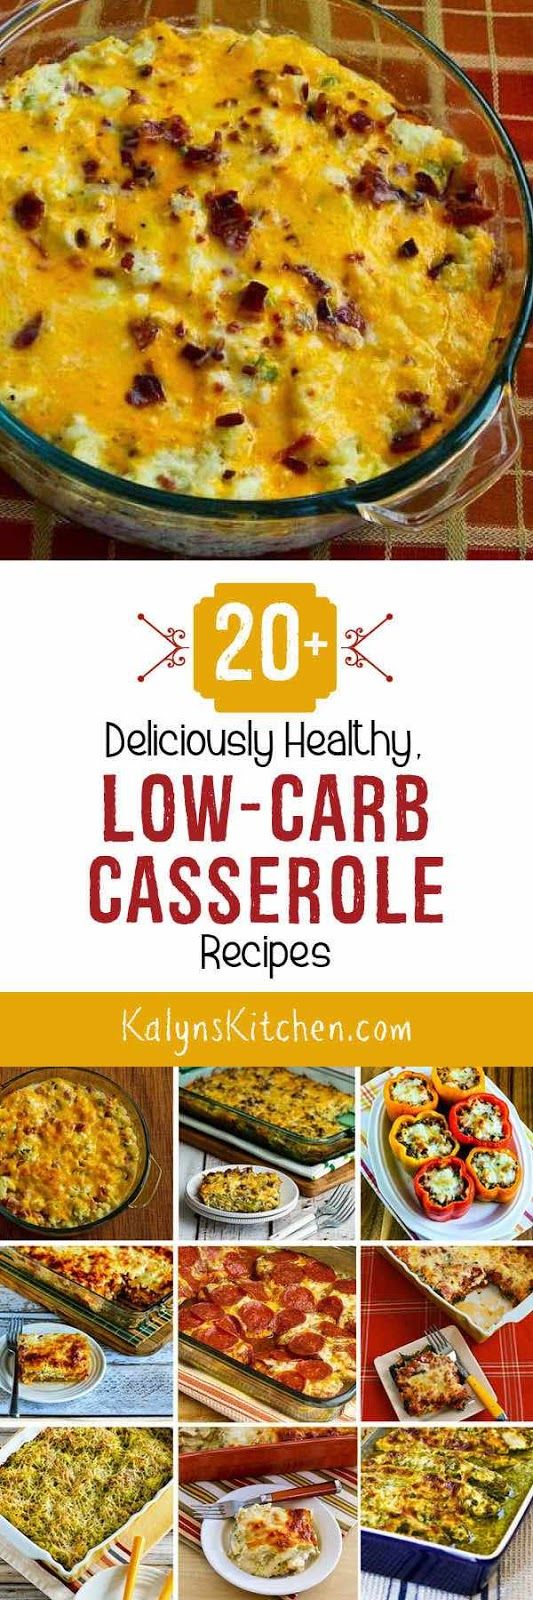 20+ Deliciously Healthy Low-Carb Casserole Recipes; these recipes for low-carb comfort food can help you make it through the holidays or get back on track in January! [found on KalynsKitchen.com]